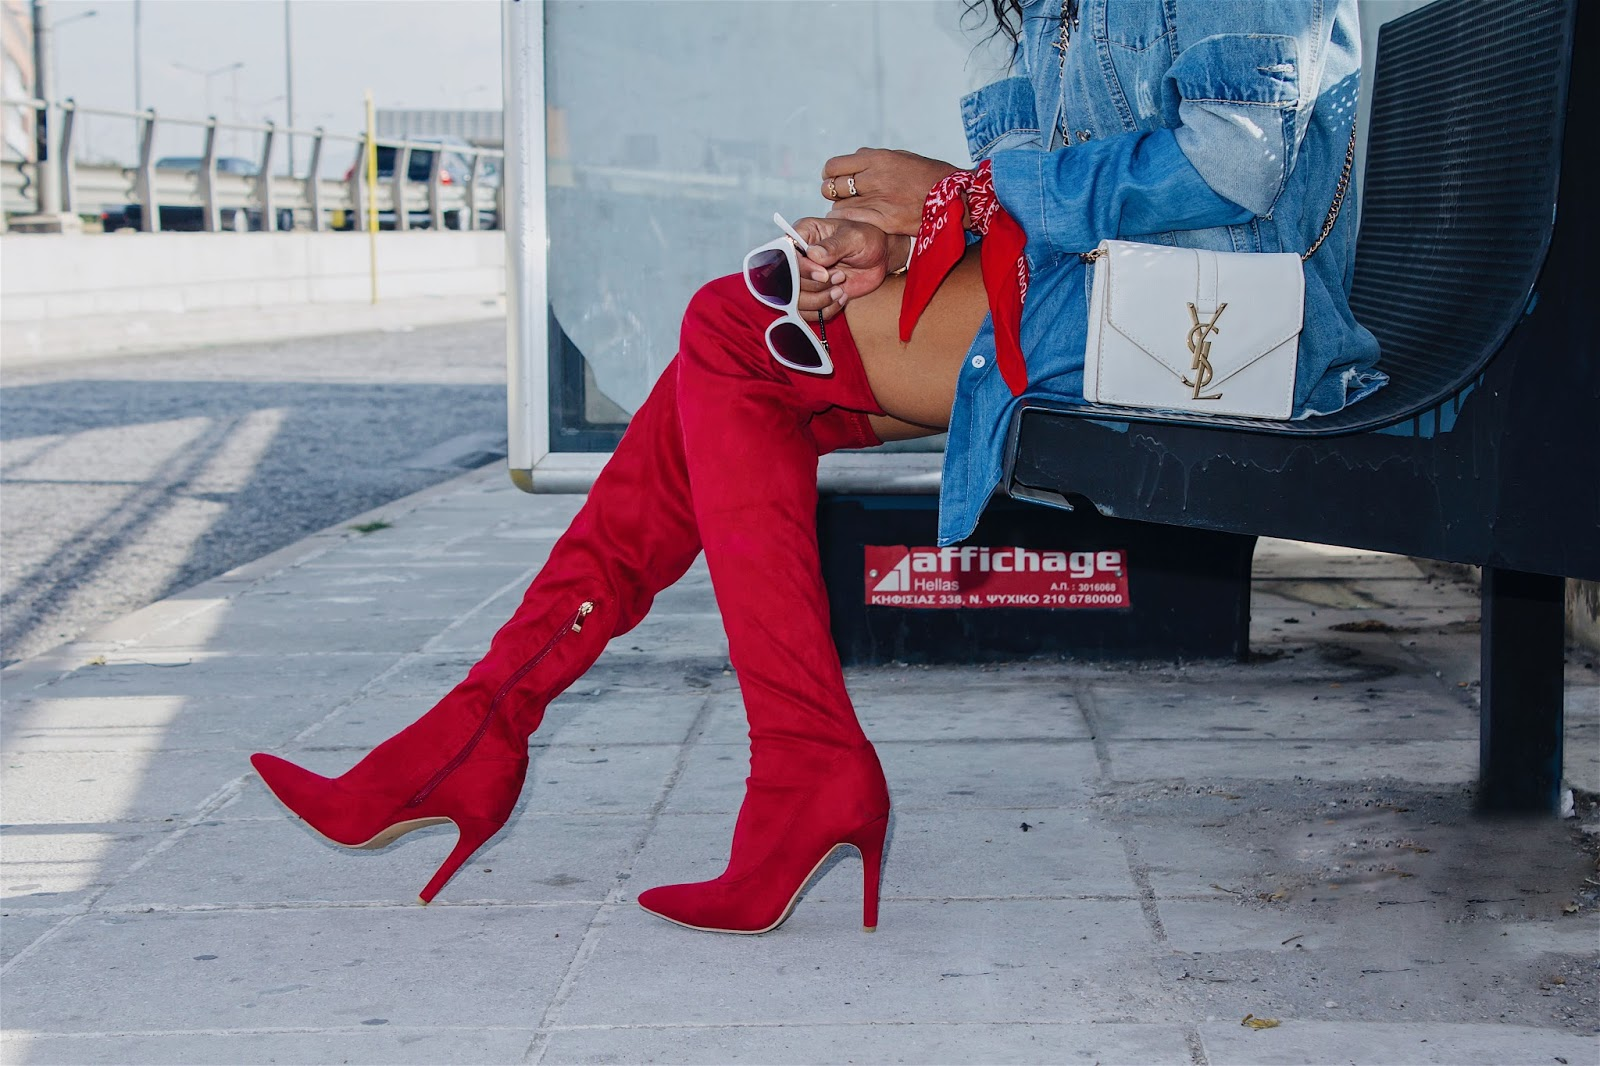 1bfc80fd3ff ... vibrant color and these boots will turn heads wherever I go. I m so  ready for the winter with the warm